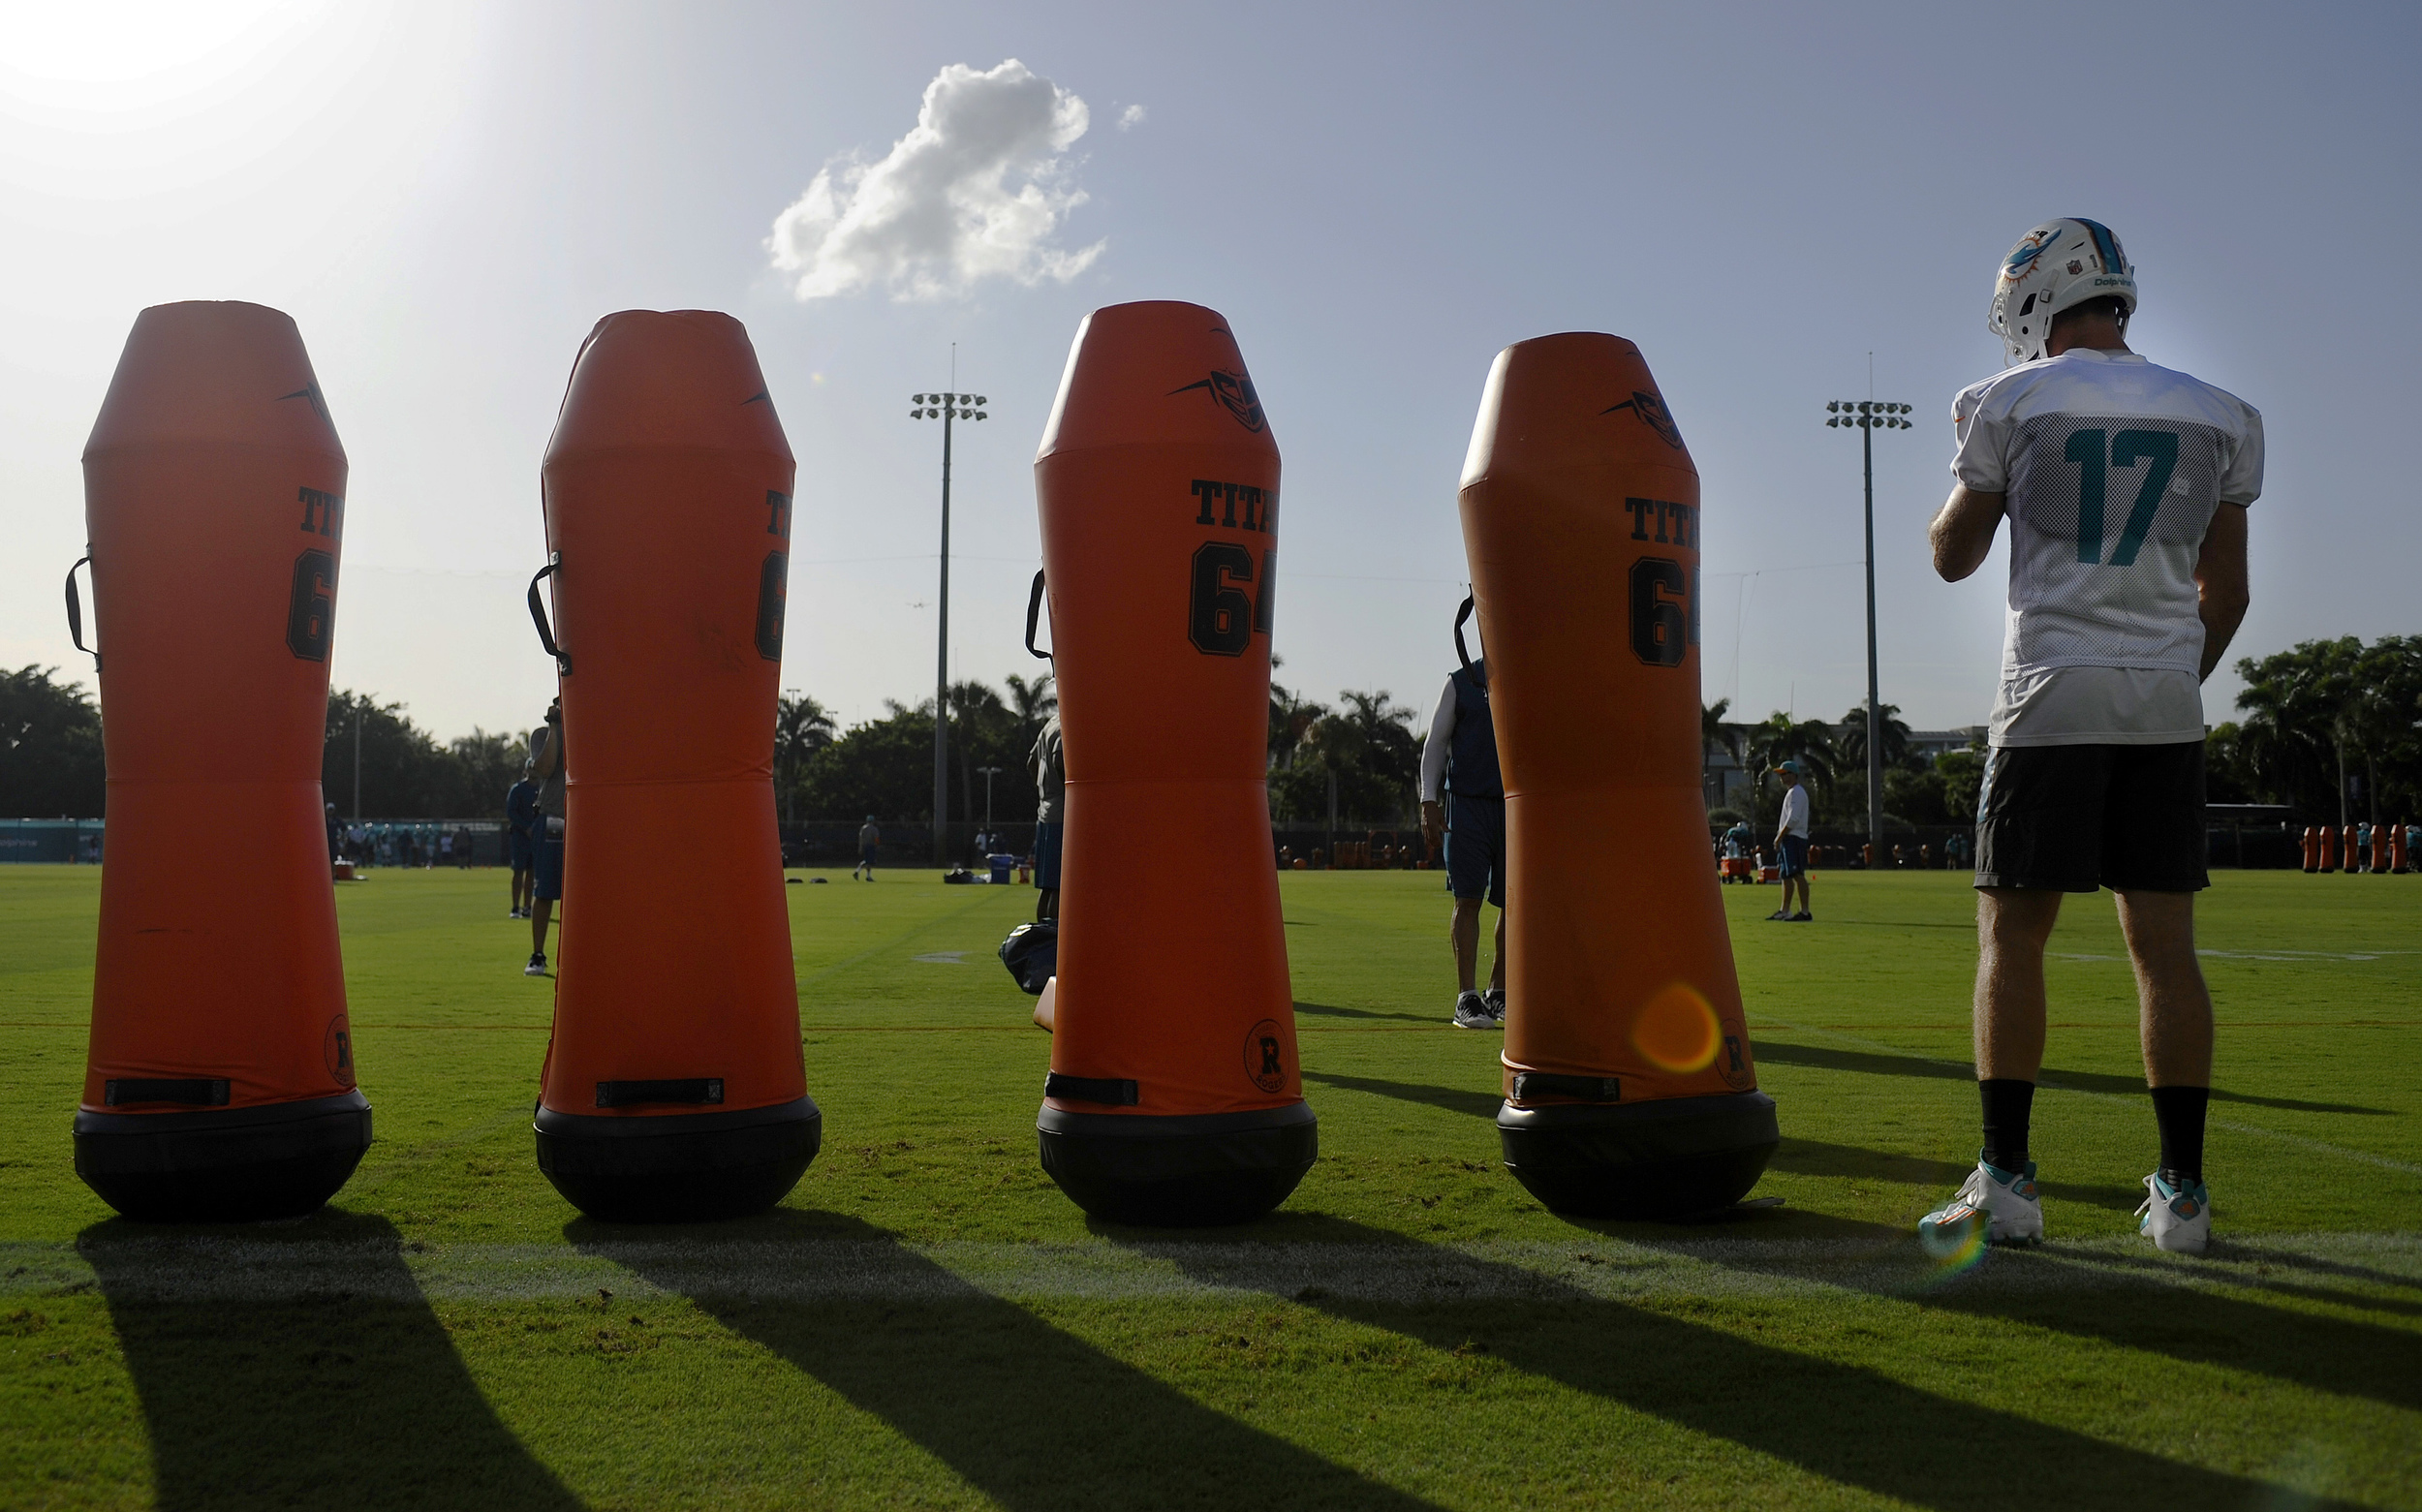 Miami Dolphins quarterback Ryan Tannehill (17) awaits to start a new passing drill during the second day of Miami Dolphins training camp held at the Dolphins Training Facility on Saturday, July 30, 2016.